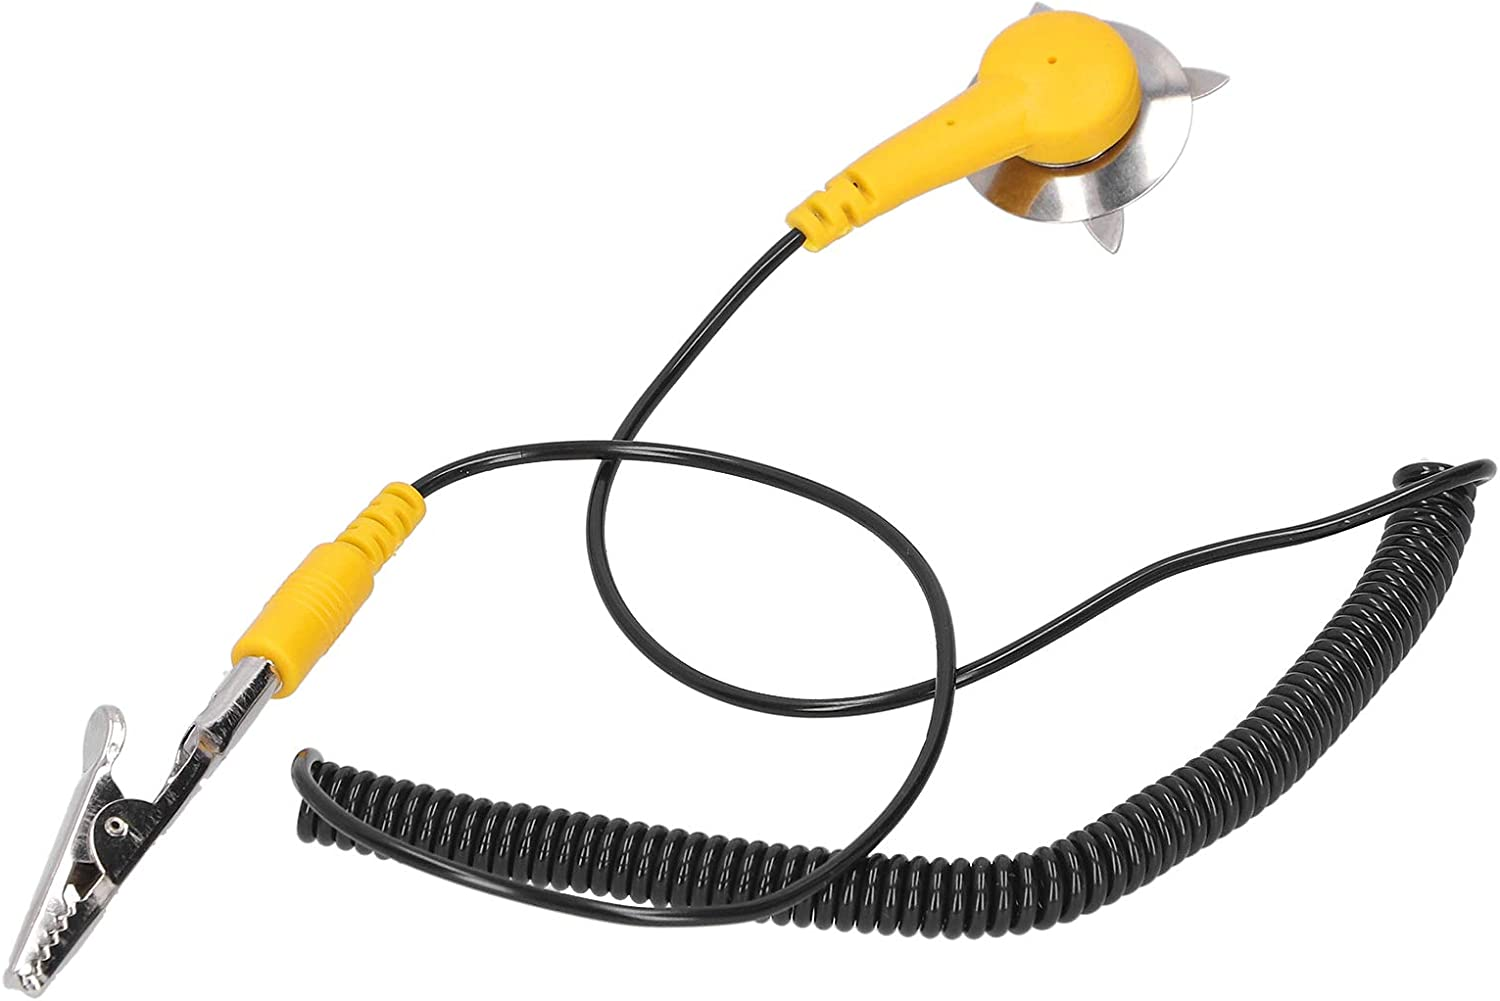 Ground Cable Wear‑Resistant Grounding Fo Superior Inventory cleanup selling sale Wire Stable Safe